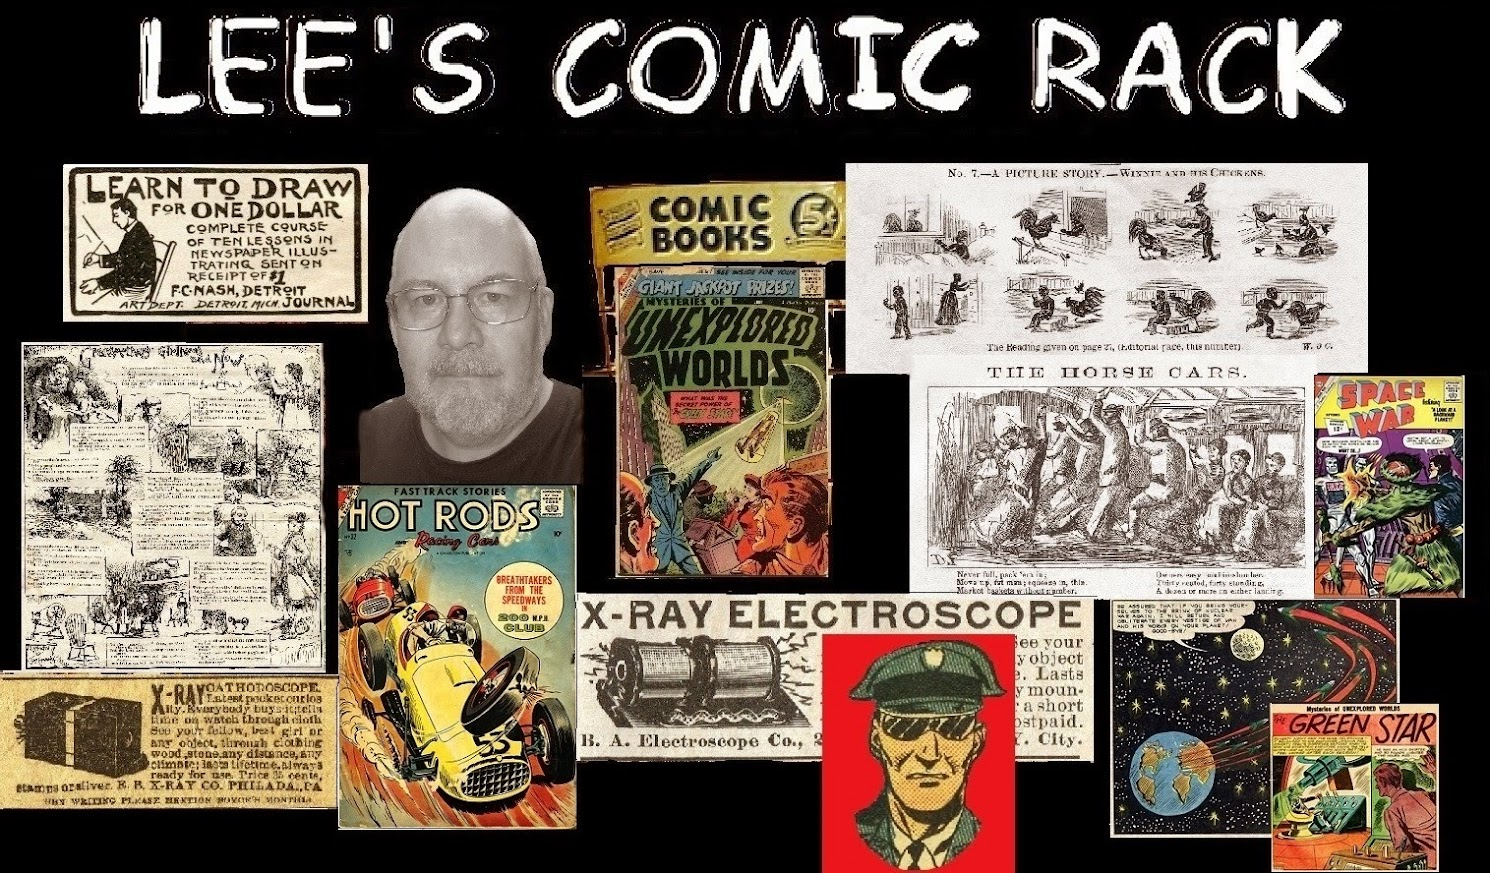 Lee's Comic Rack